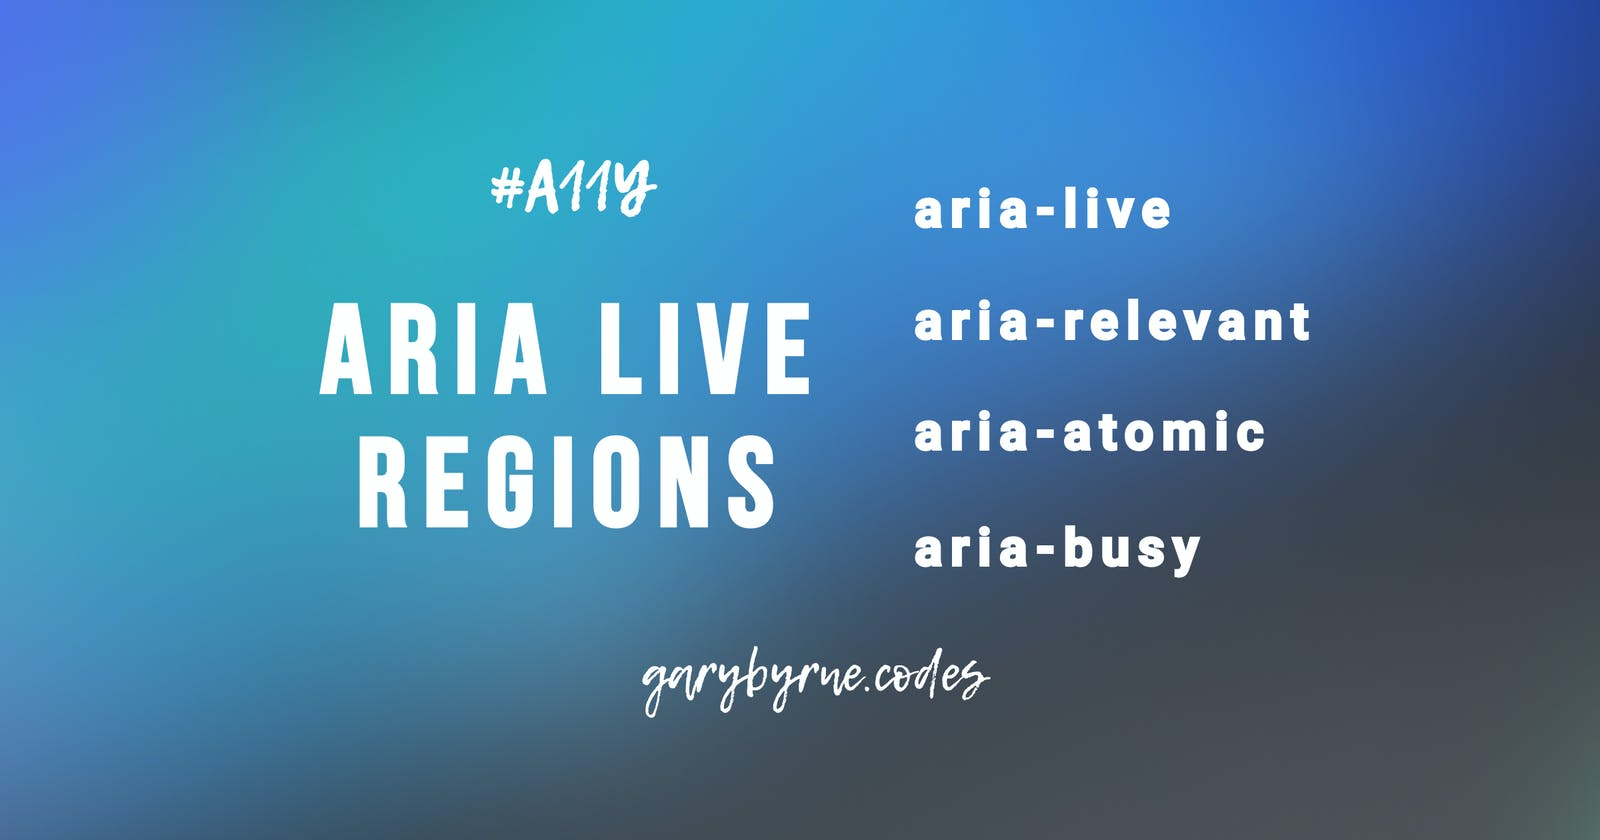 Introduction to ARIA Live Regions